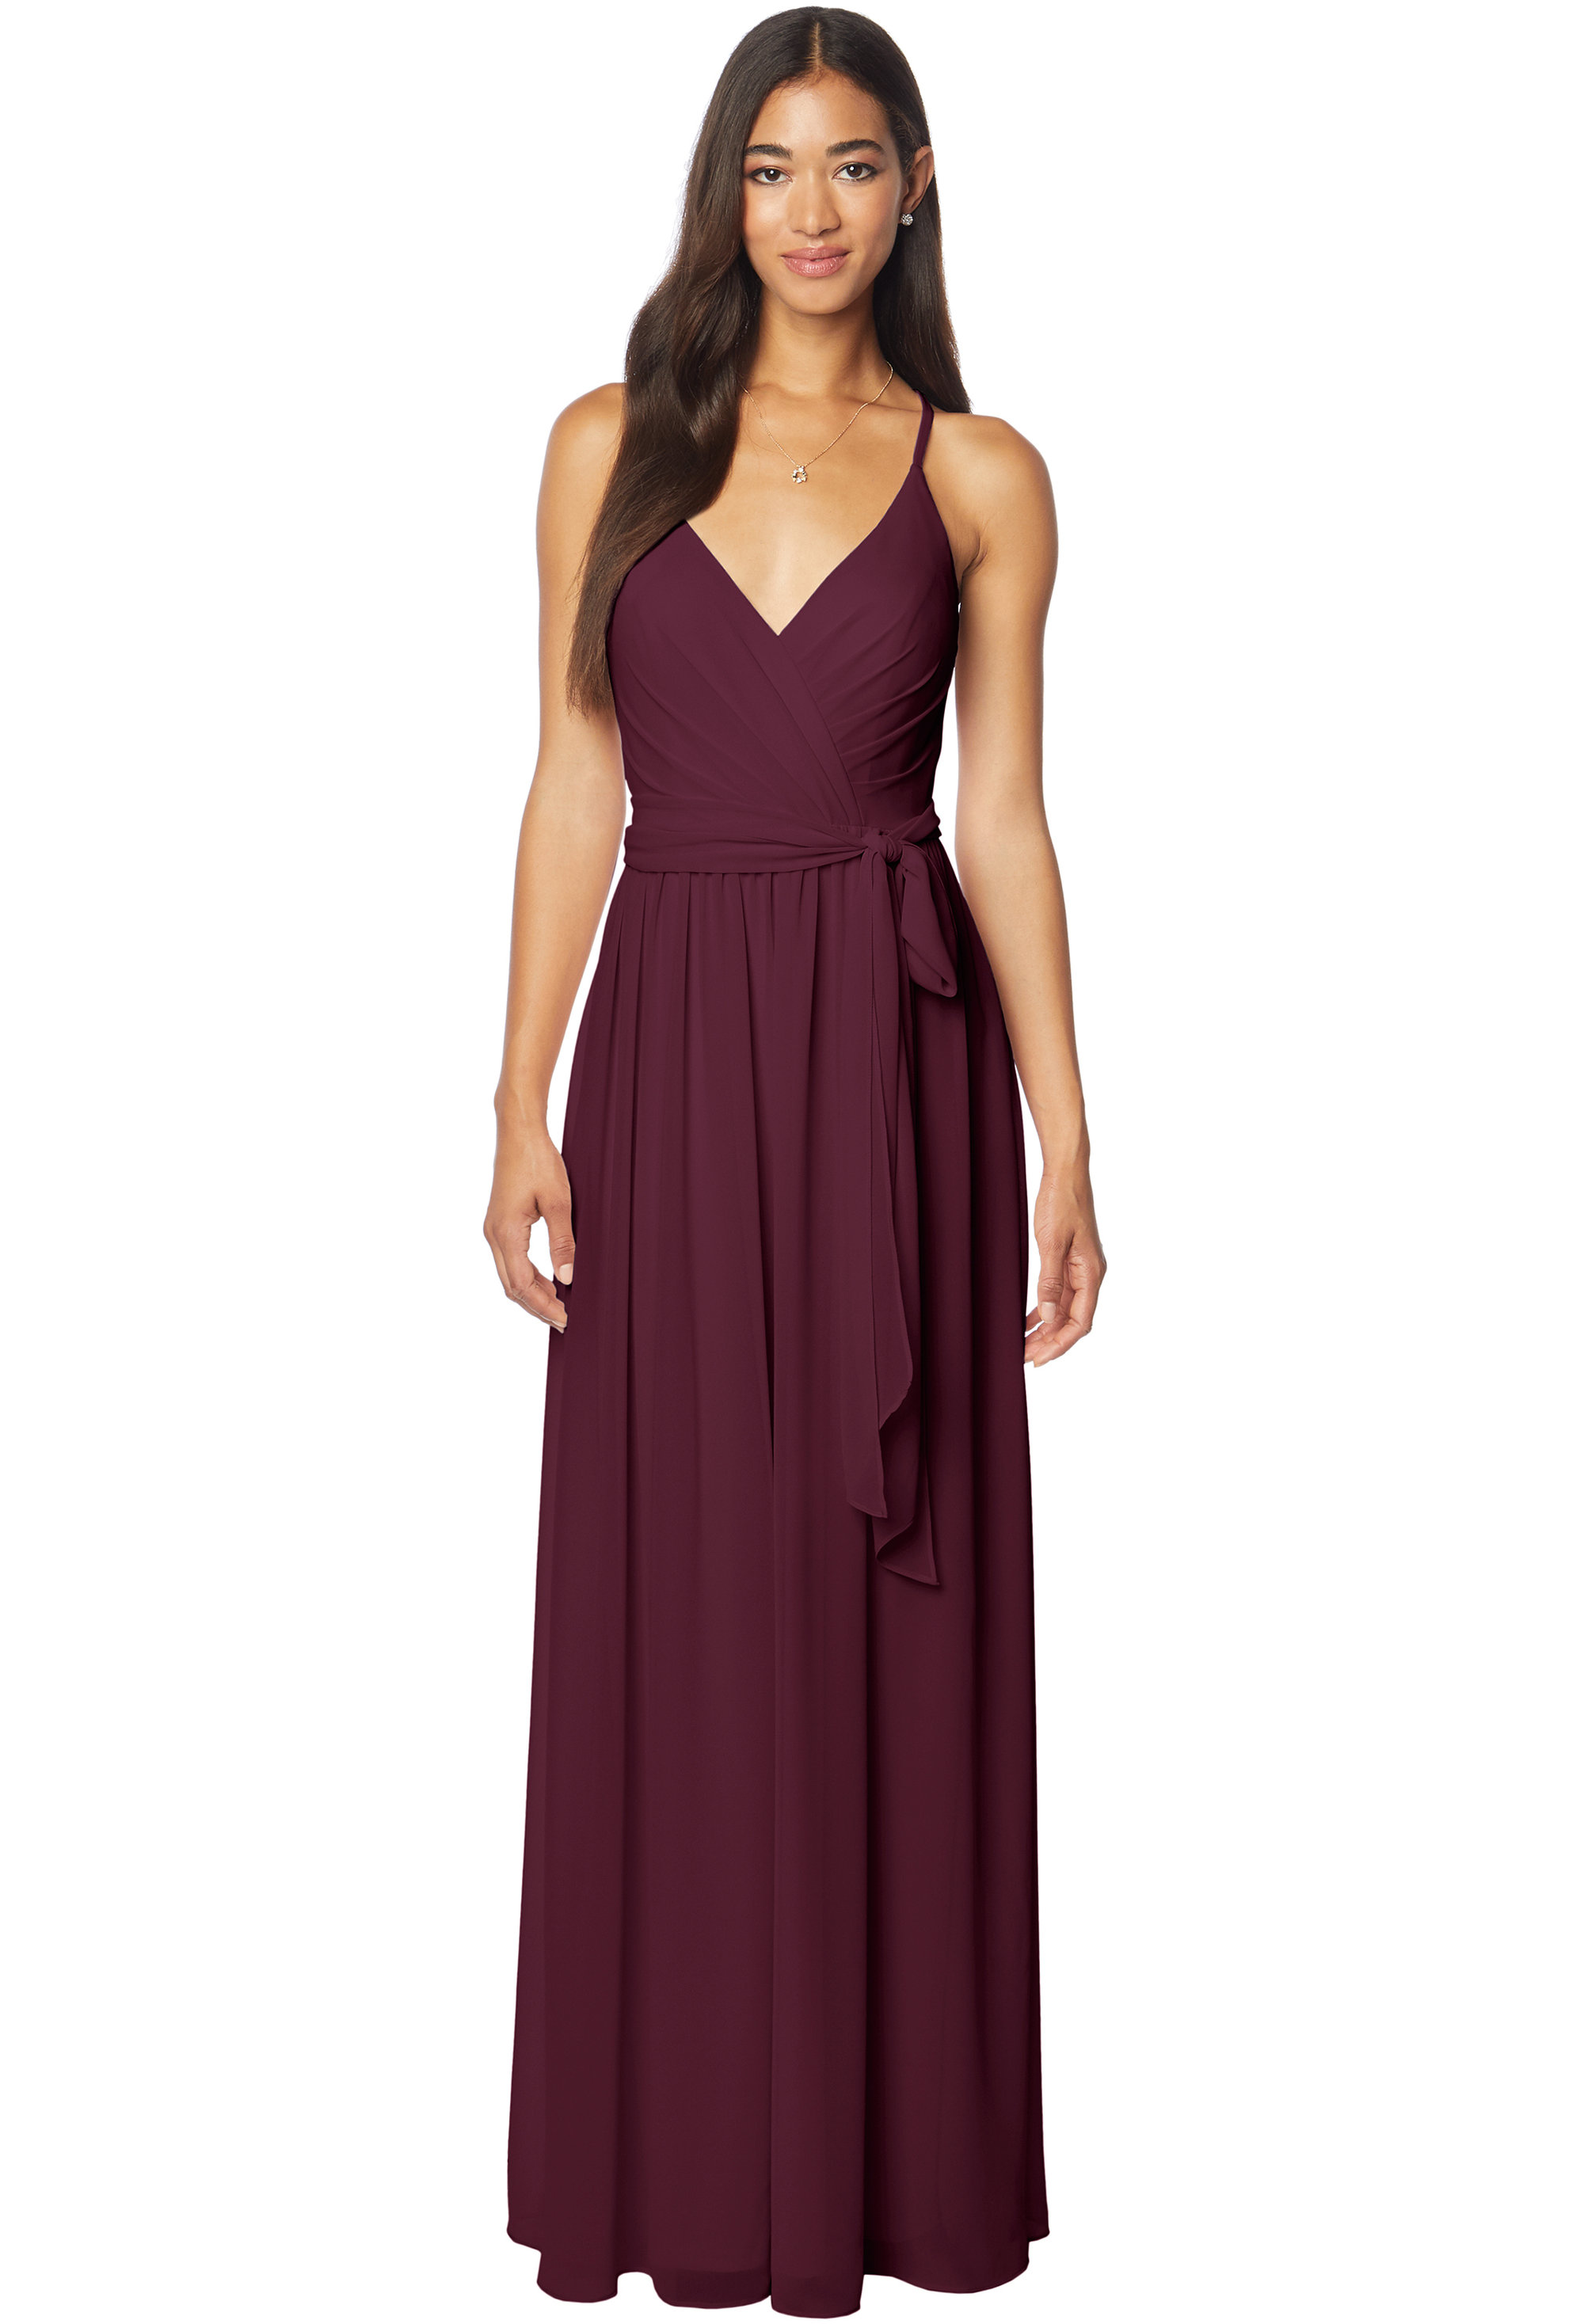 Bill Levkoff WINE Chiffon V-neck A-line gown, $220.00 Front